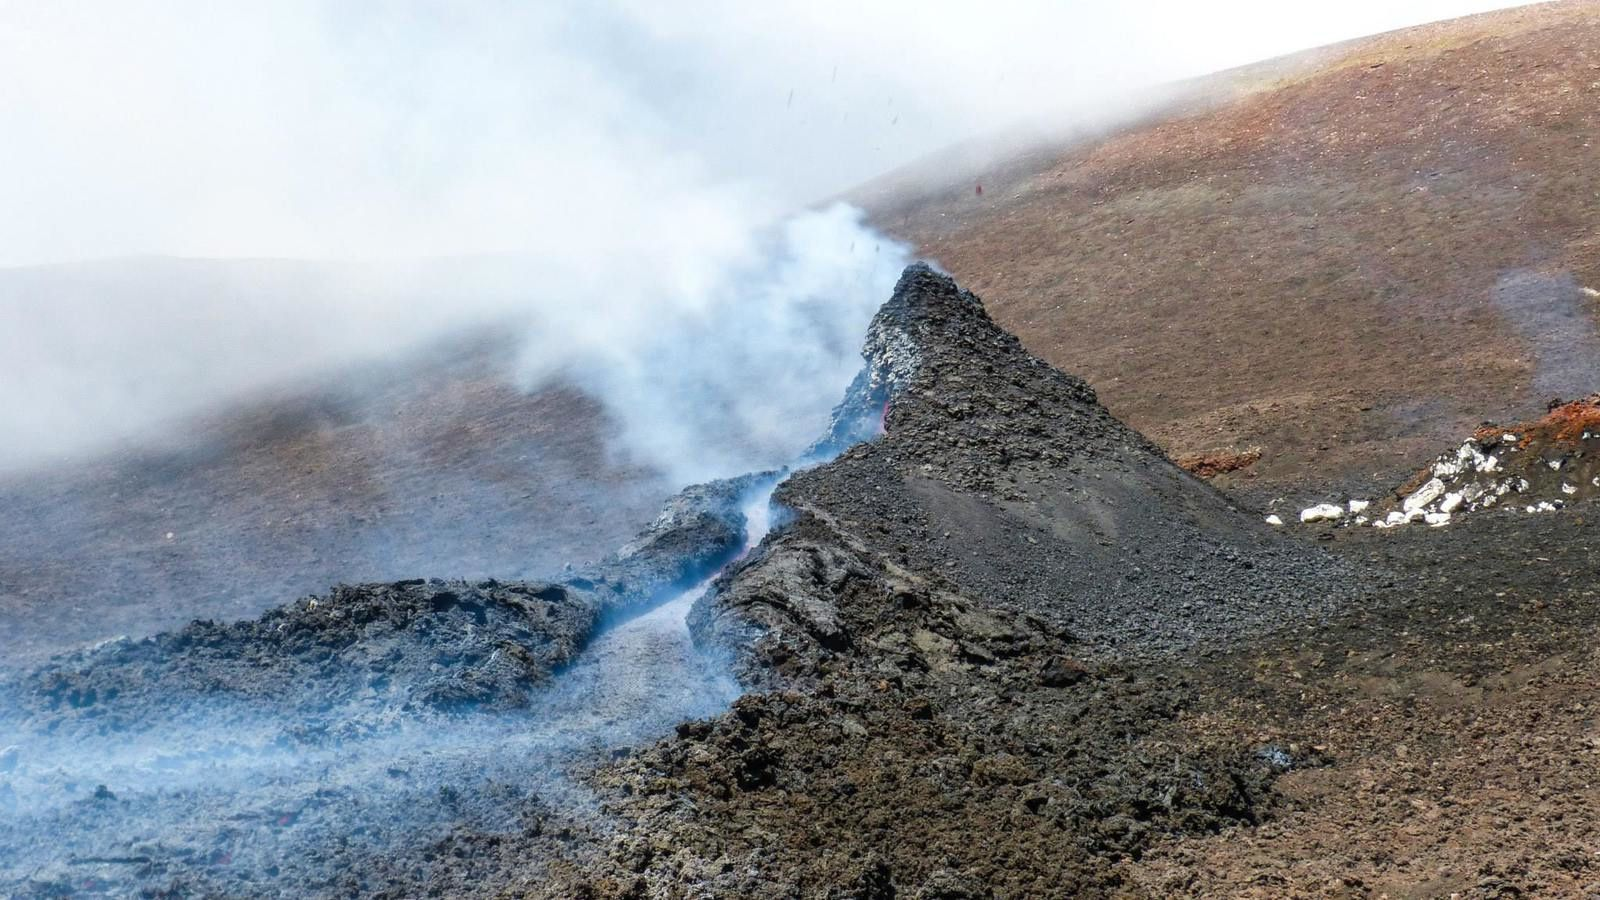 Etna - The hornito at the base of the northeast crater is feeding a small lava flow -  photo Gio Giusa / Biagio Ragonese (Guida Alpina dell Etna)